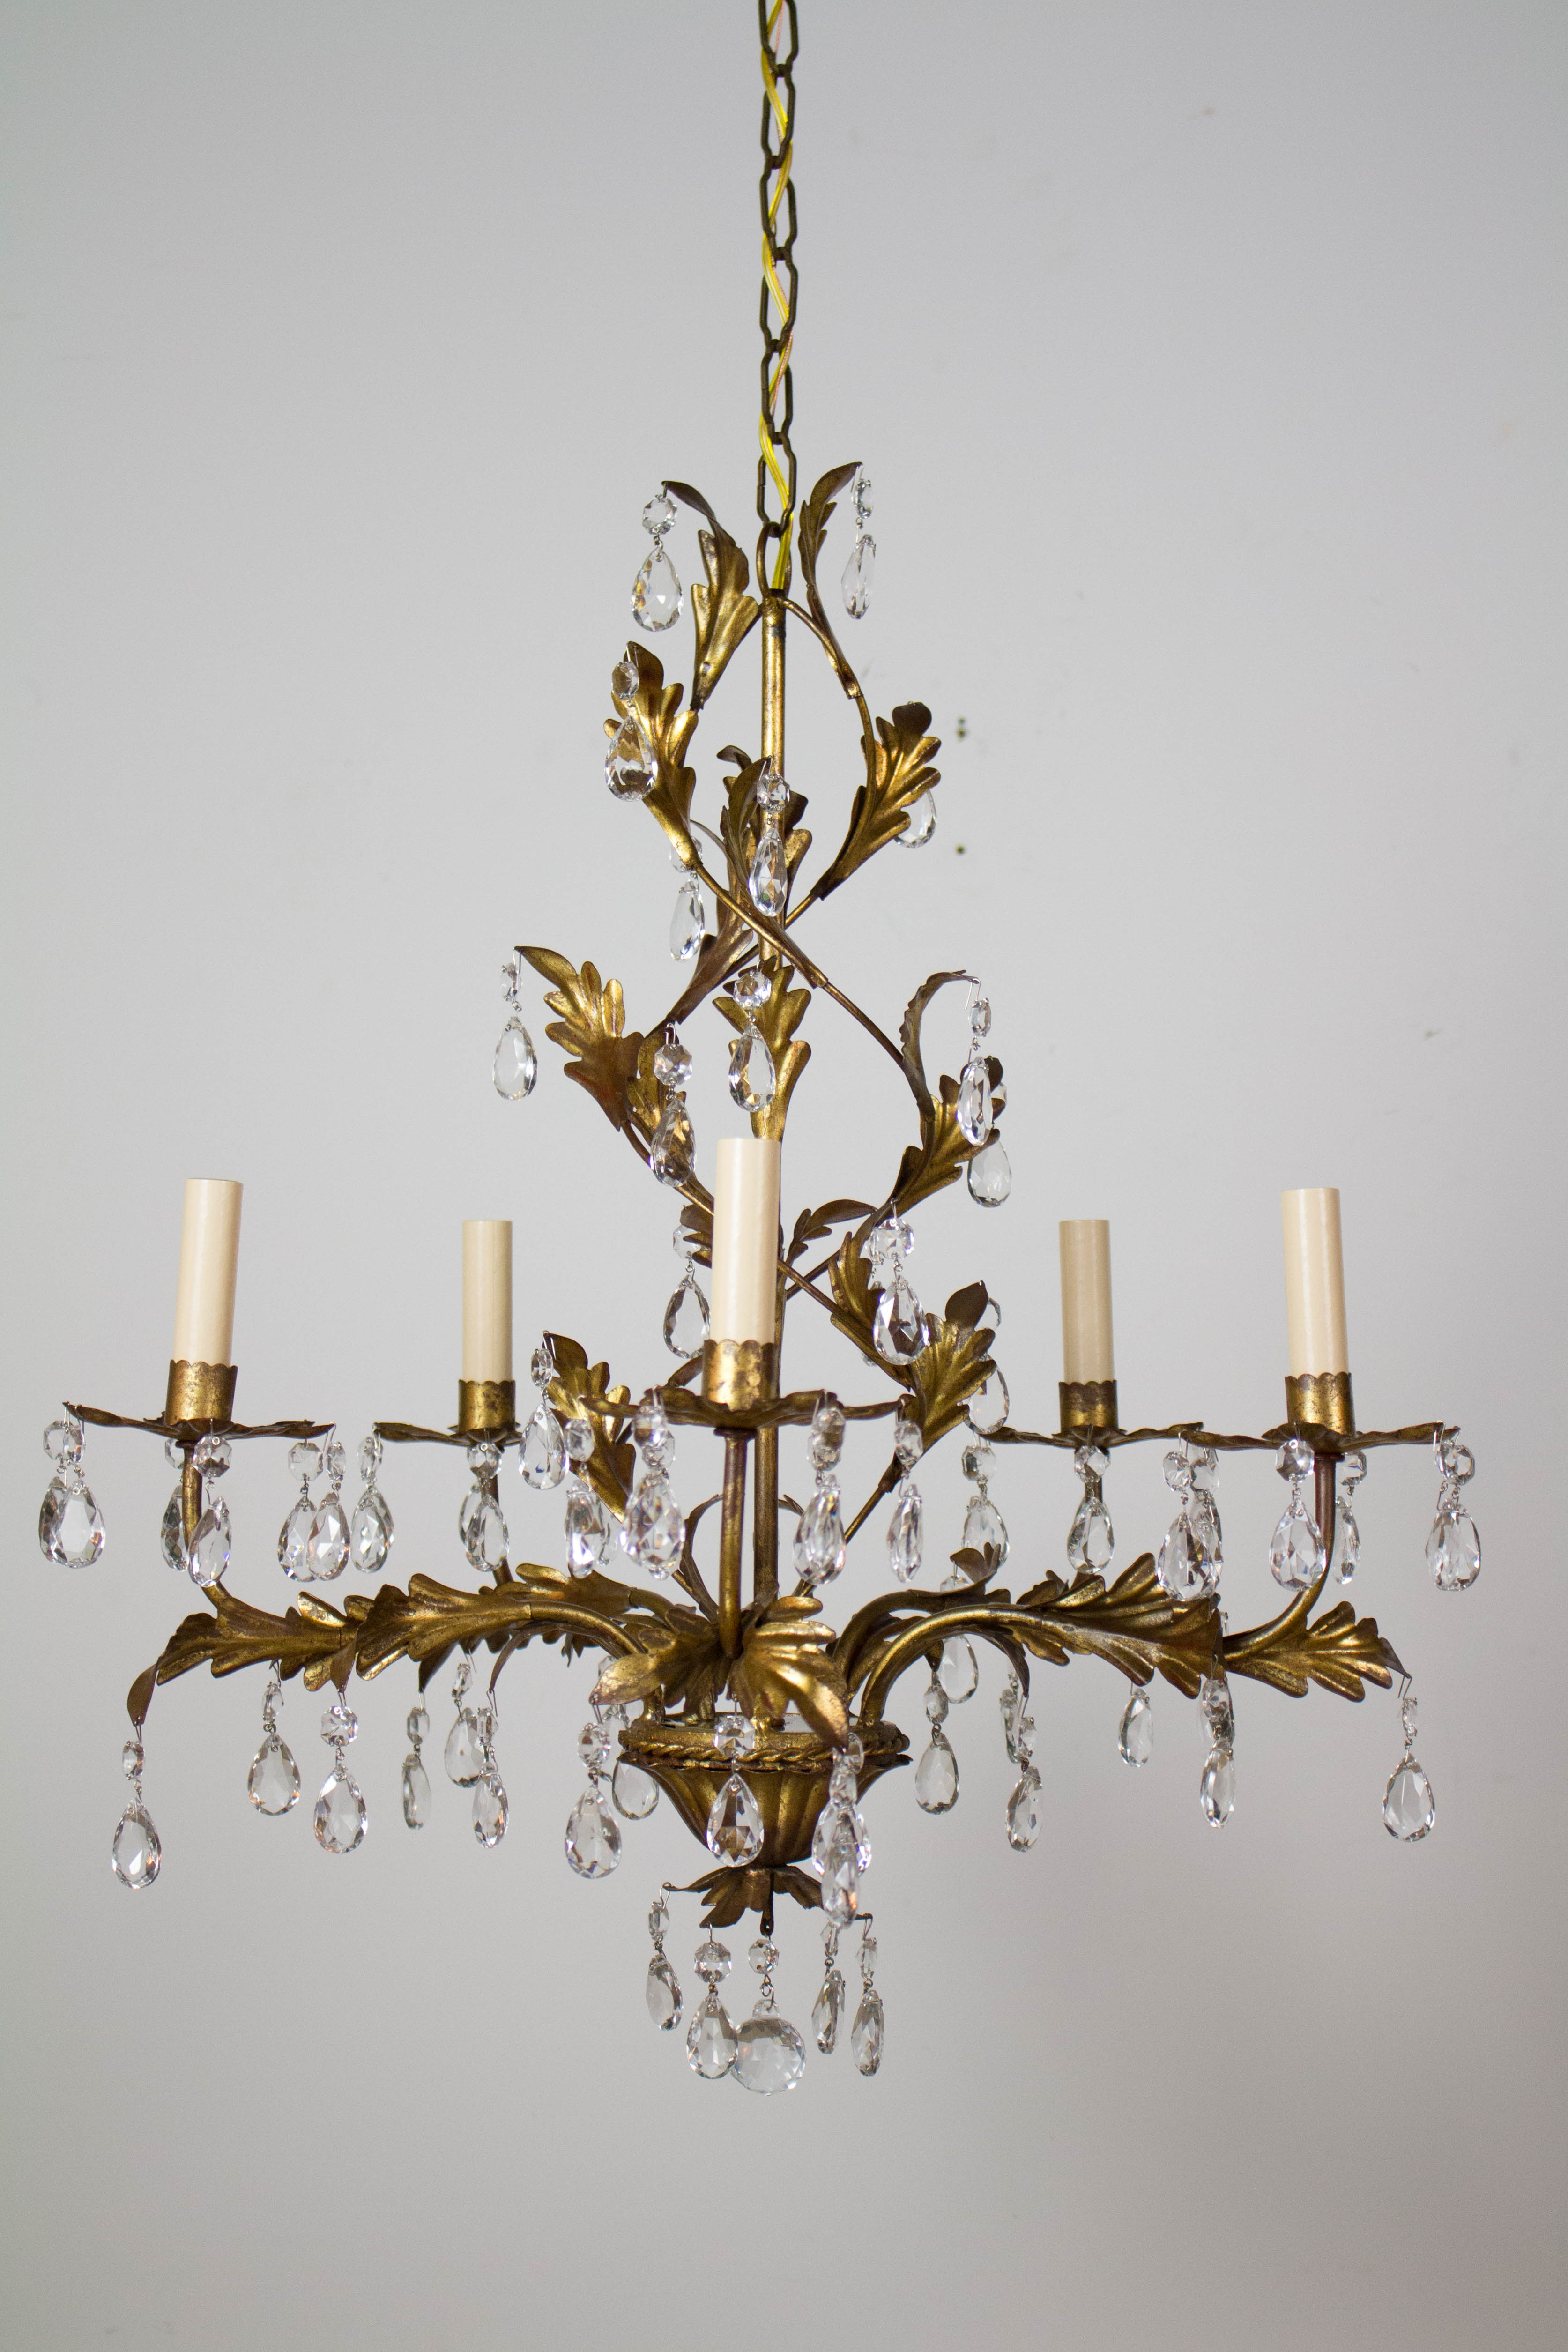 Italian Five Light Gold Leaf Chandelier with Crystals